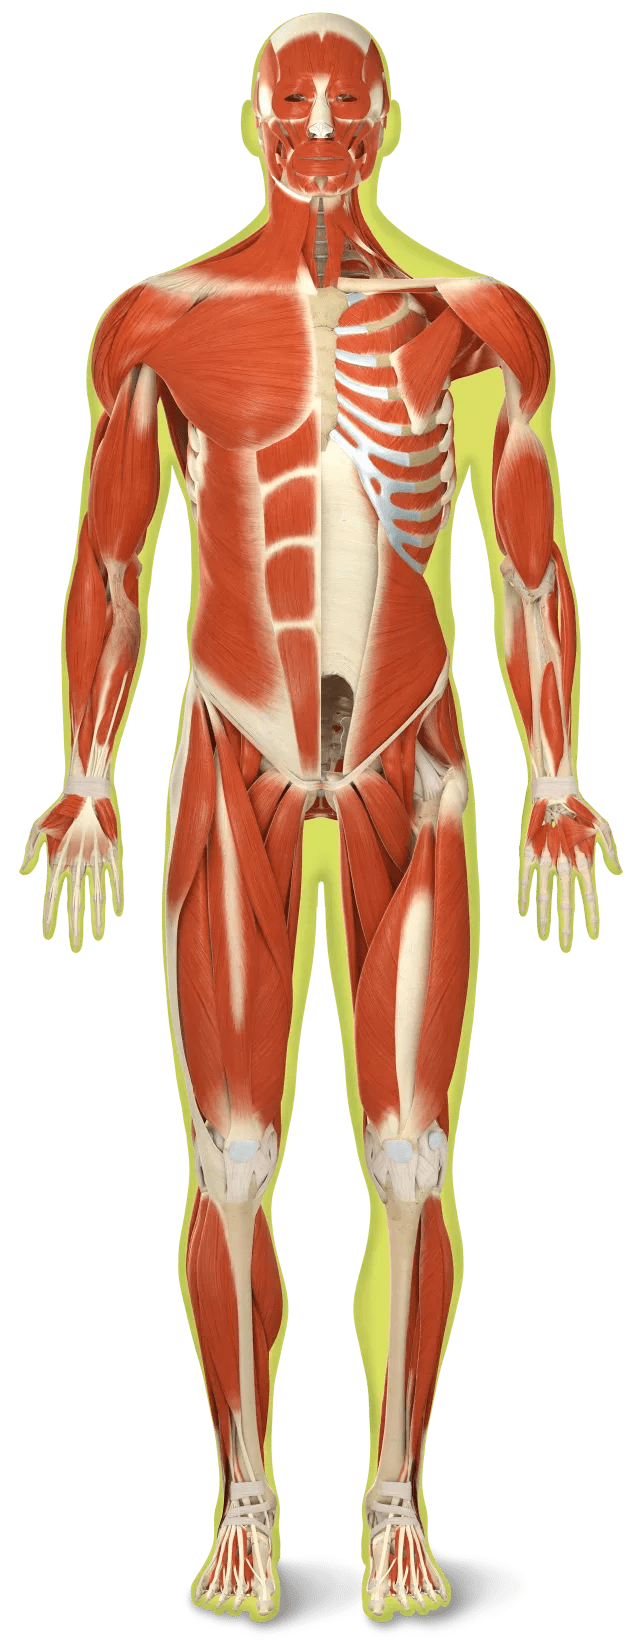 Muscles Of The Body Diagram Tag Full Body Diagram Of Muscles Human